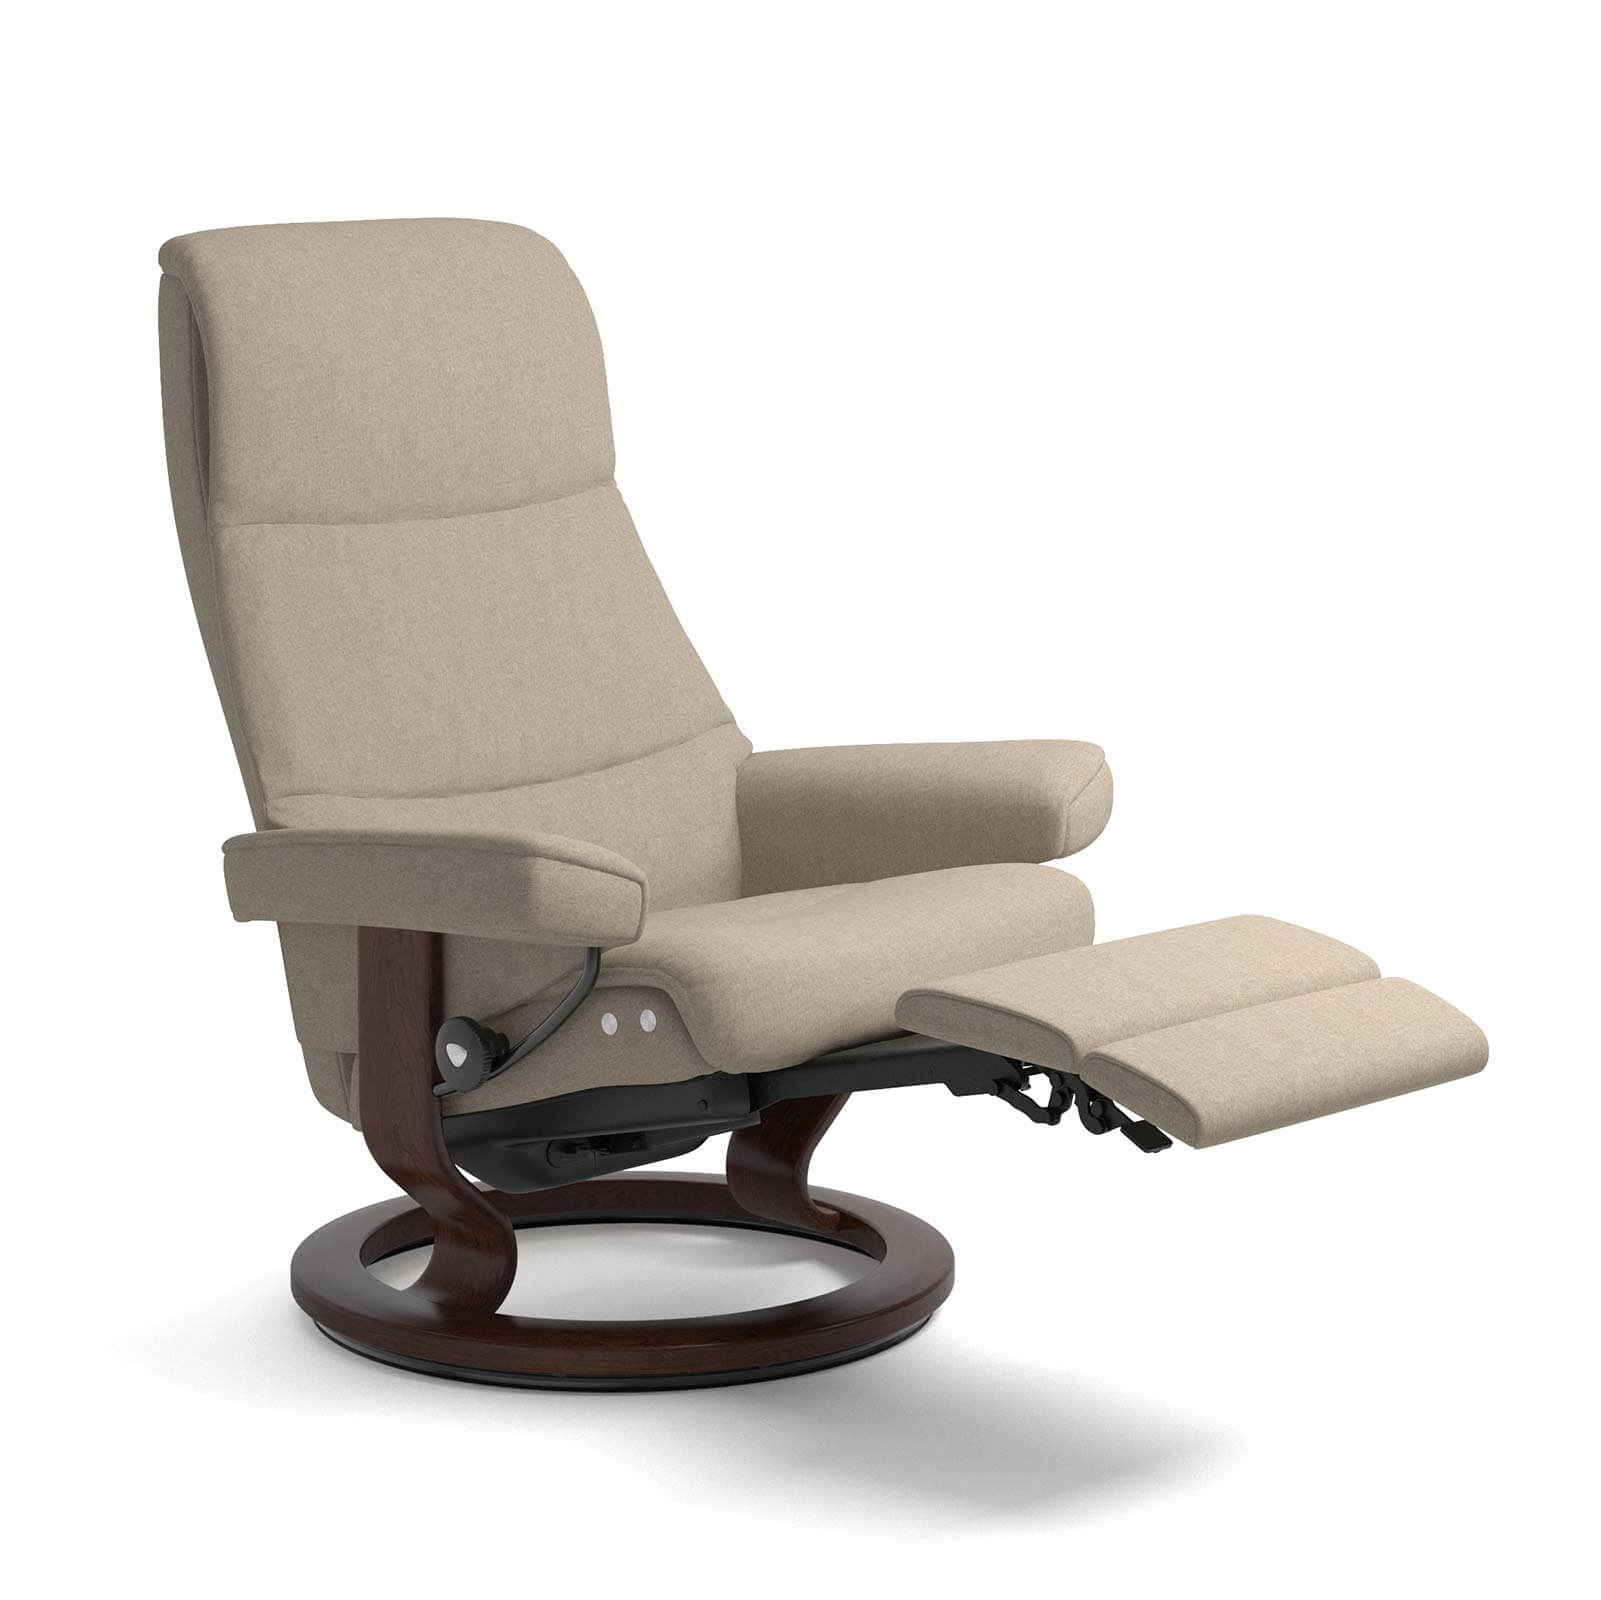 Stressless Sessel Höffner Stressless View Legcomfort Calido Light Beige Stressless